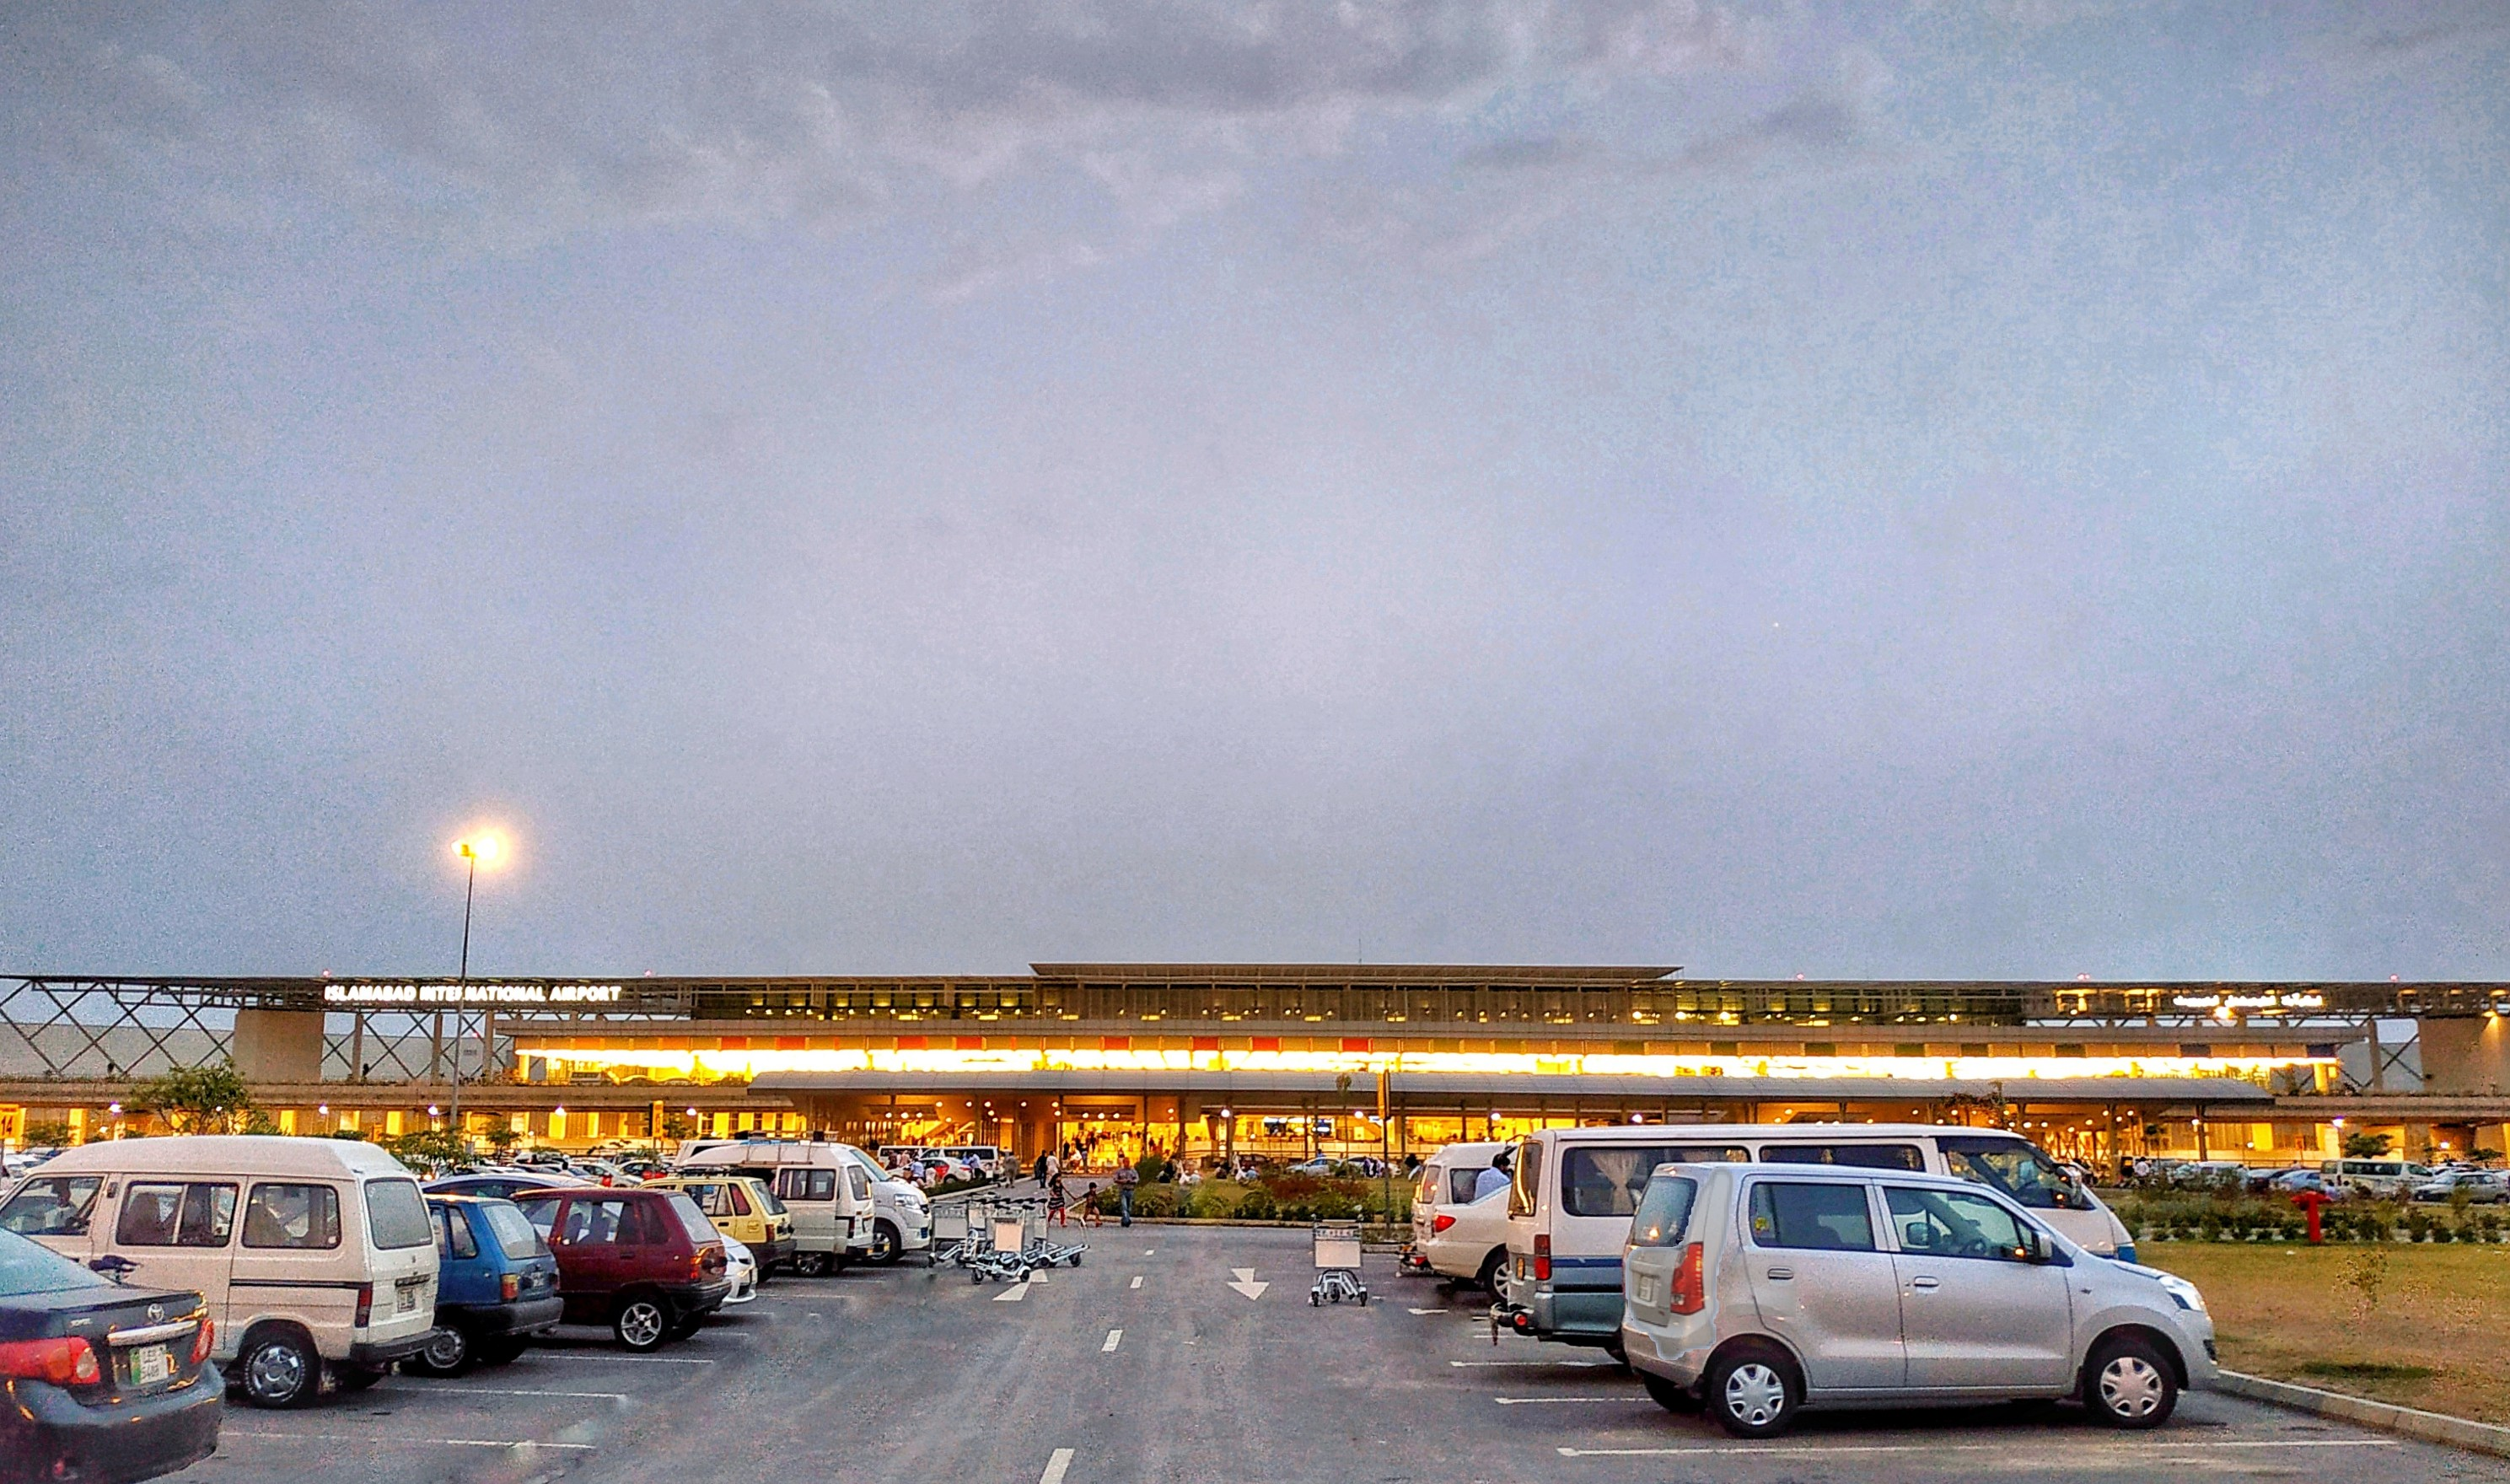 Islamabad International Airport - Wikipedia